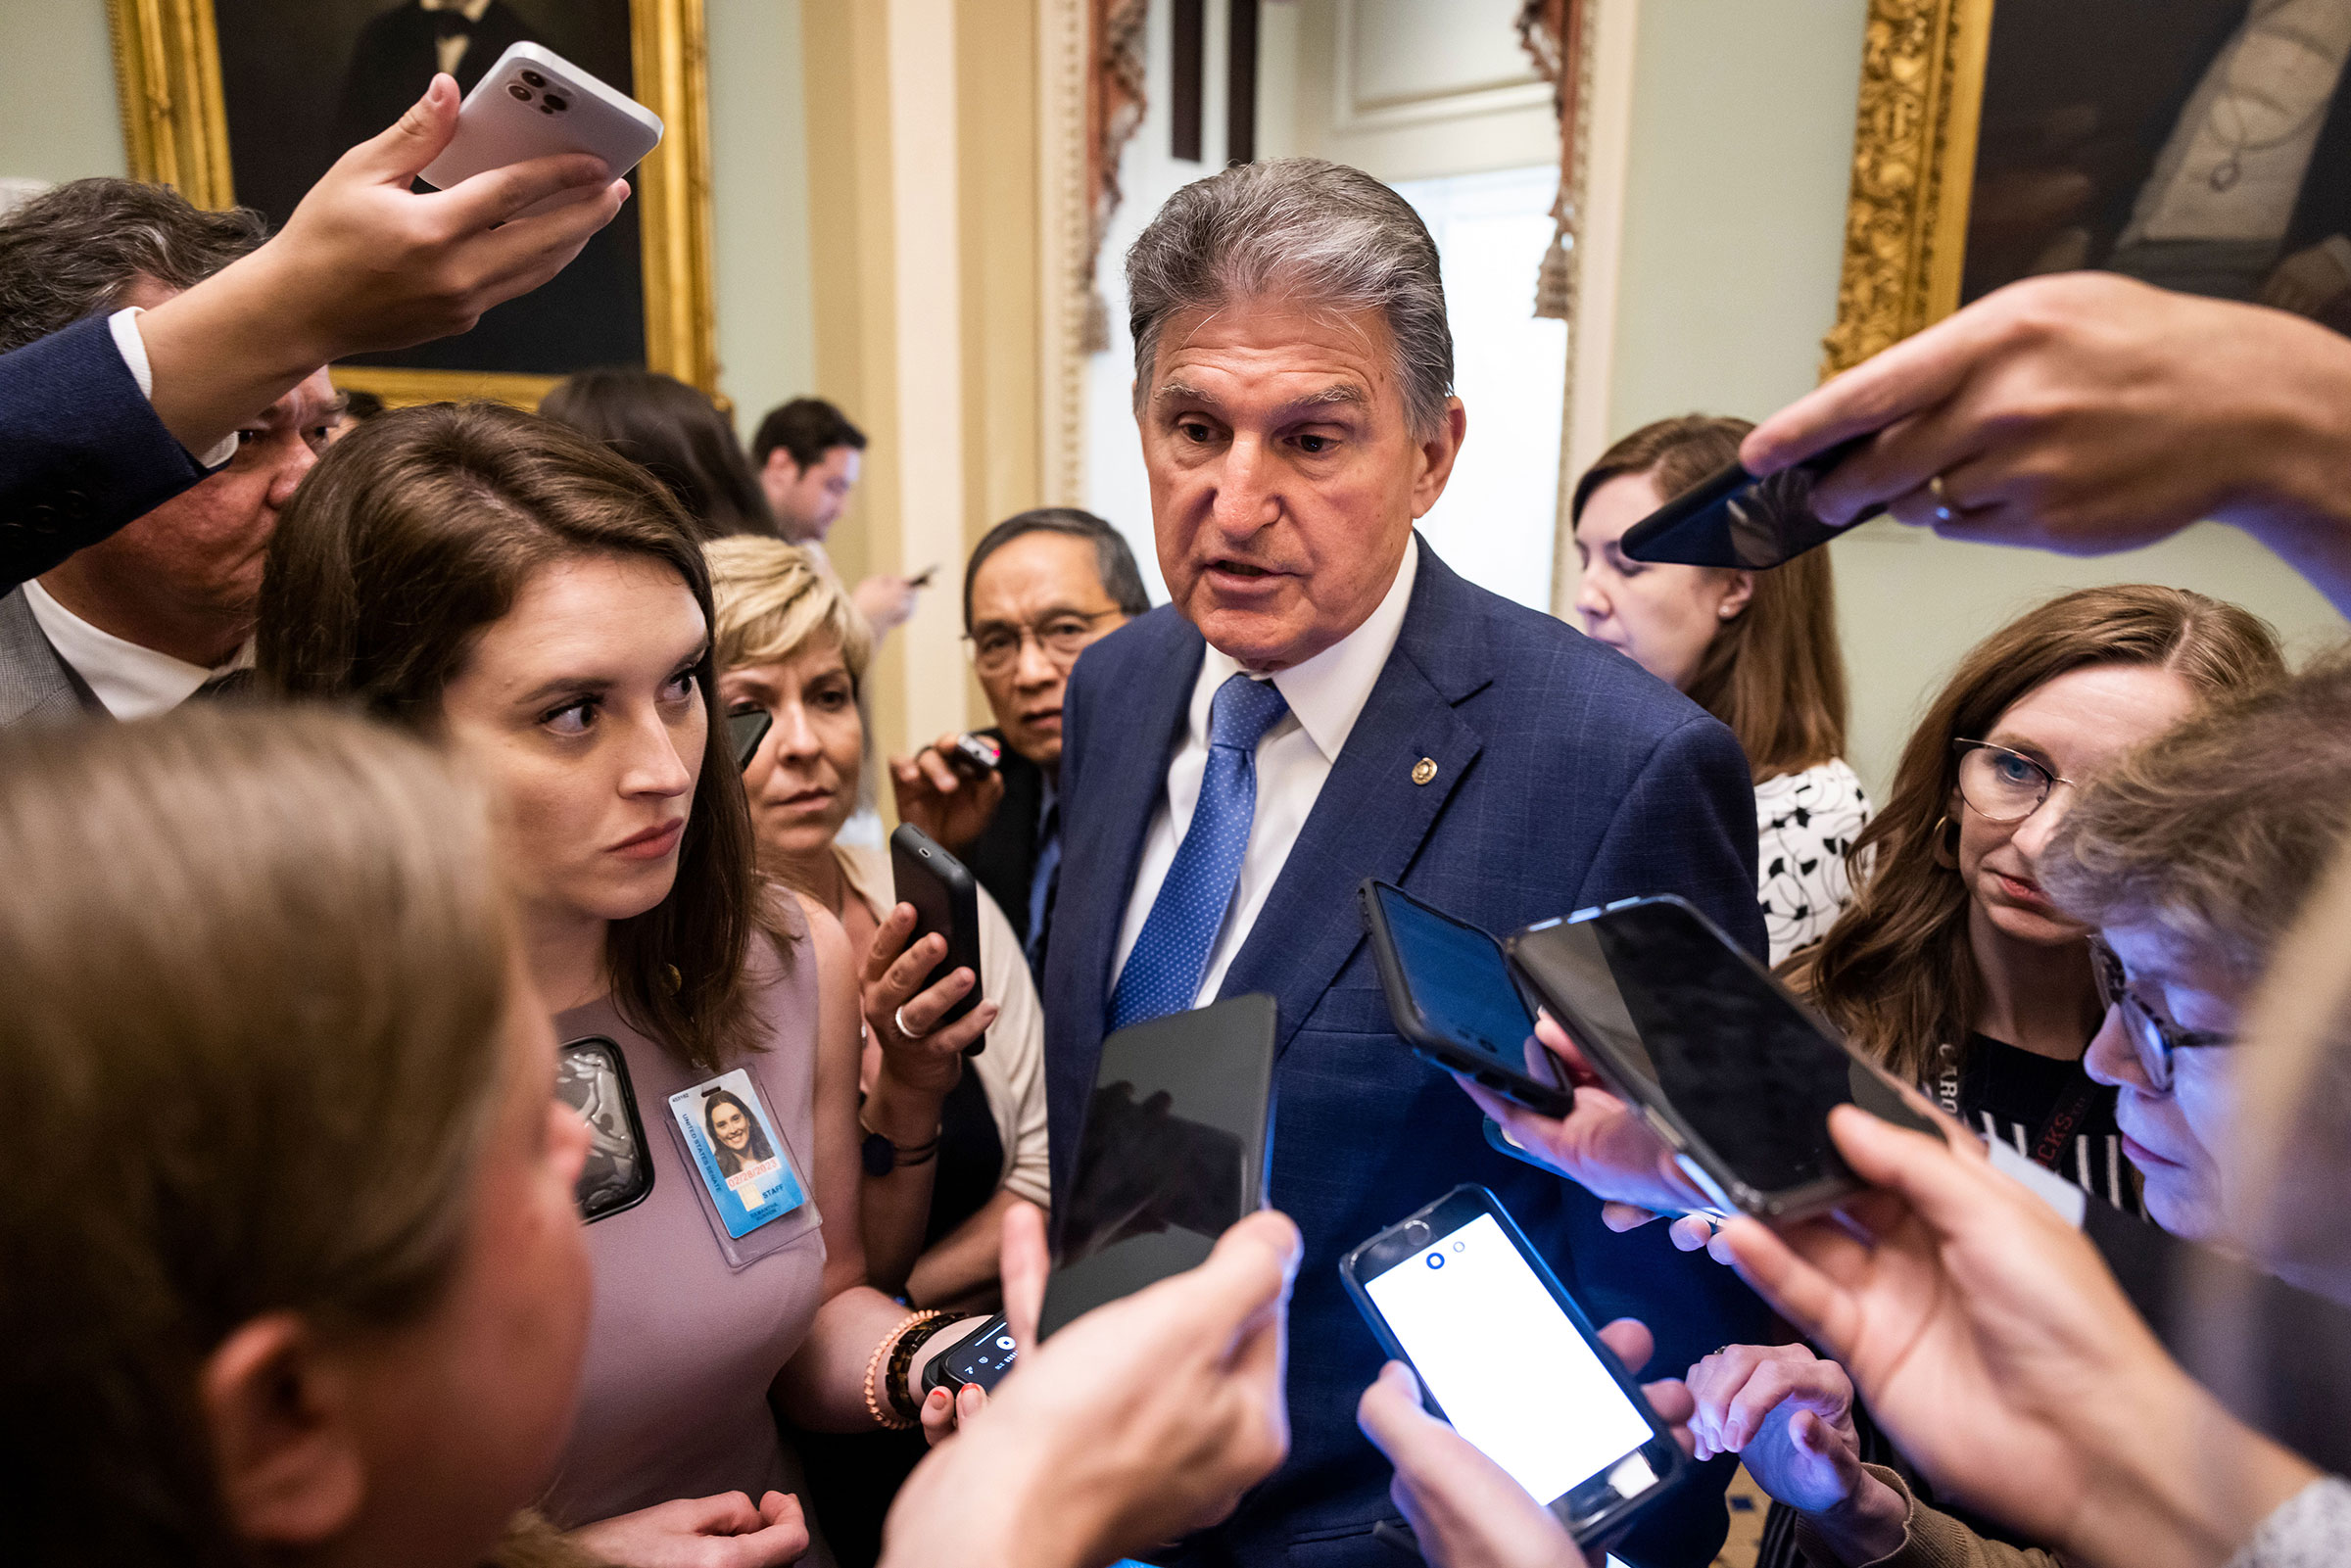 Democratic Senator from West Virginia Joe Manchin speaks to reporters after President Joe Biden met with lawmakers seeking their support for his two-bill approach to infrastructure spending in the Capitol in Washington, on July 14, 2021.